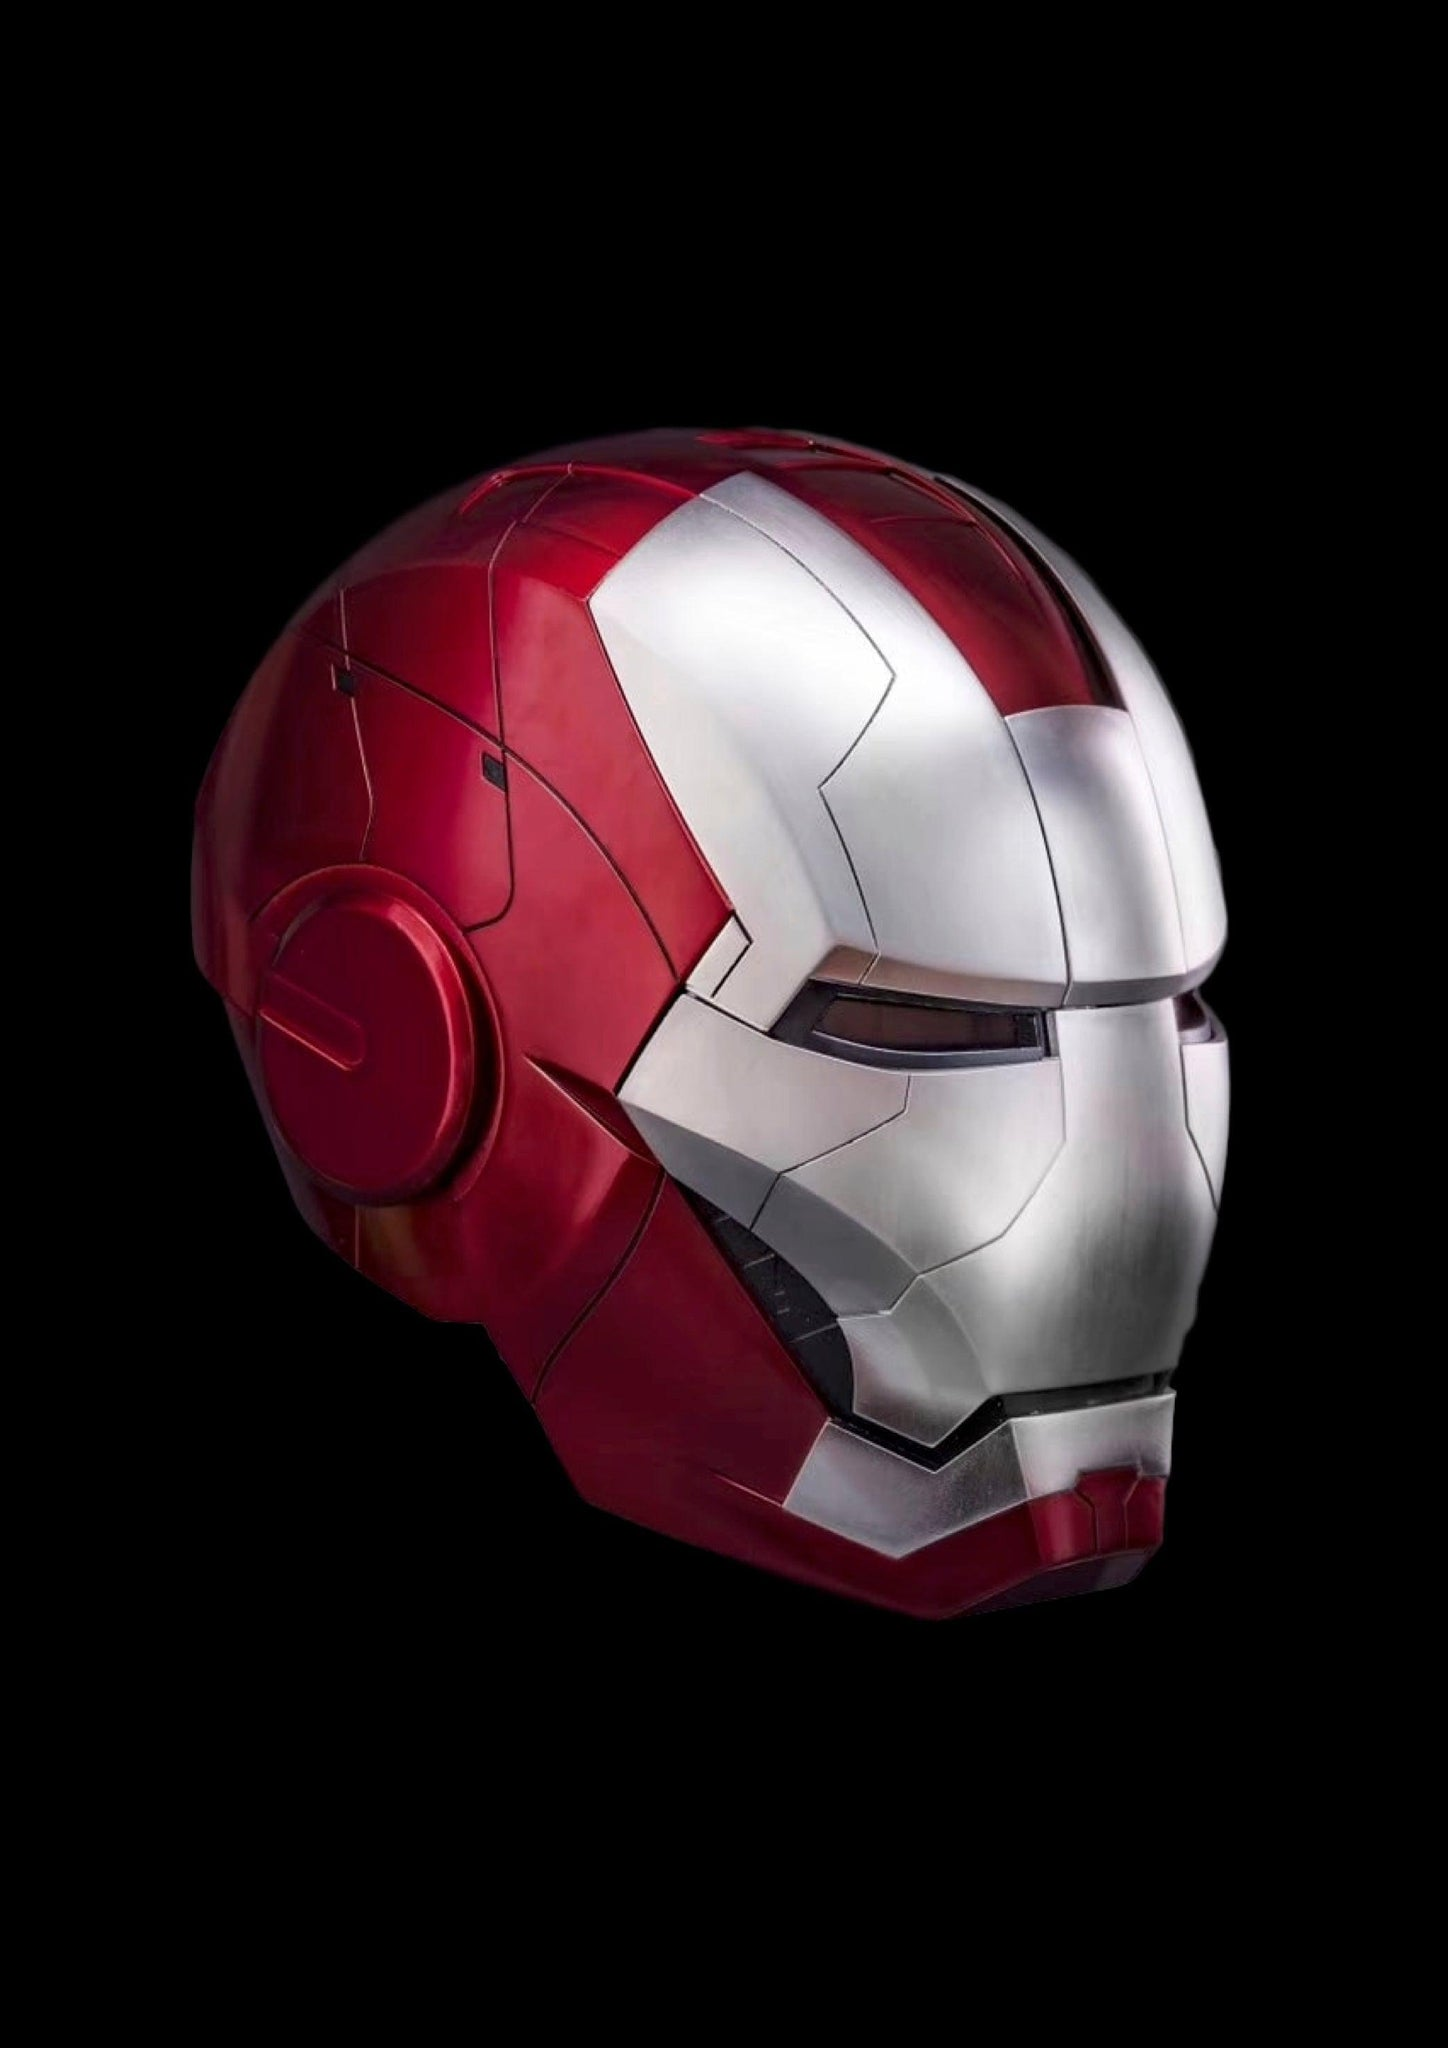 Iron Man: MK5: Wearable Helmet: Electronic Open/Close: AutoKing-(1/1) Life Size Scale-AutoKing